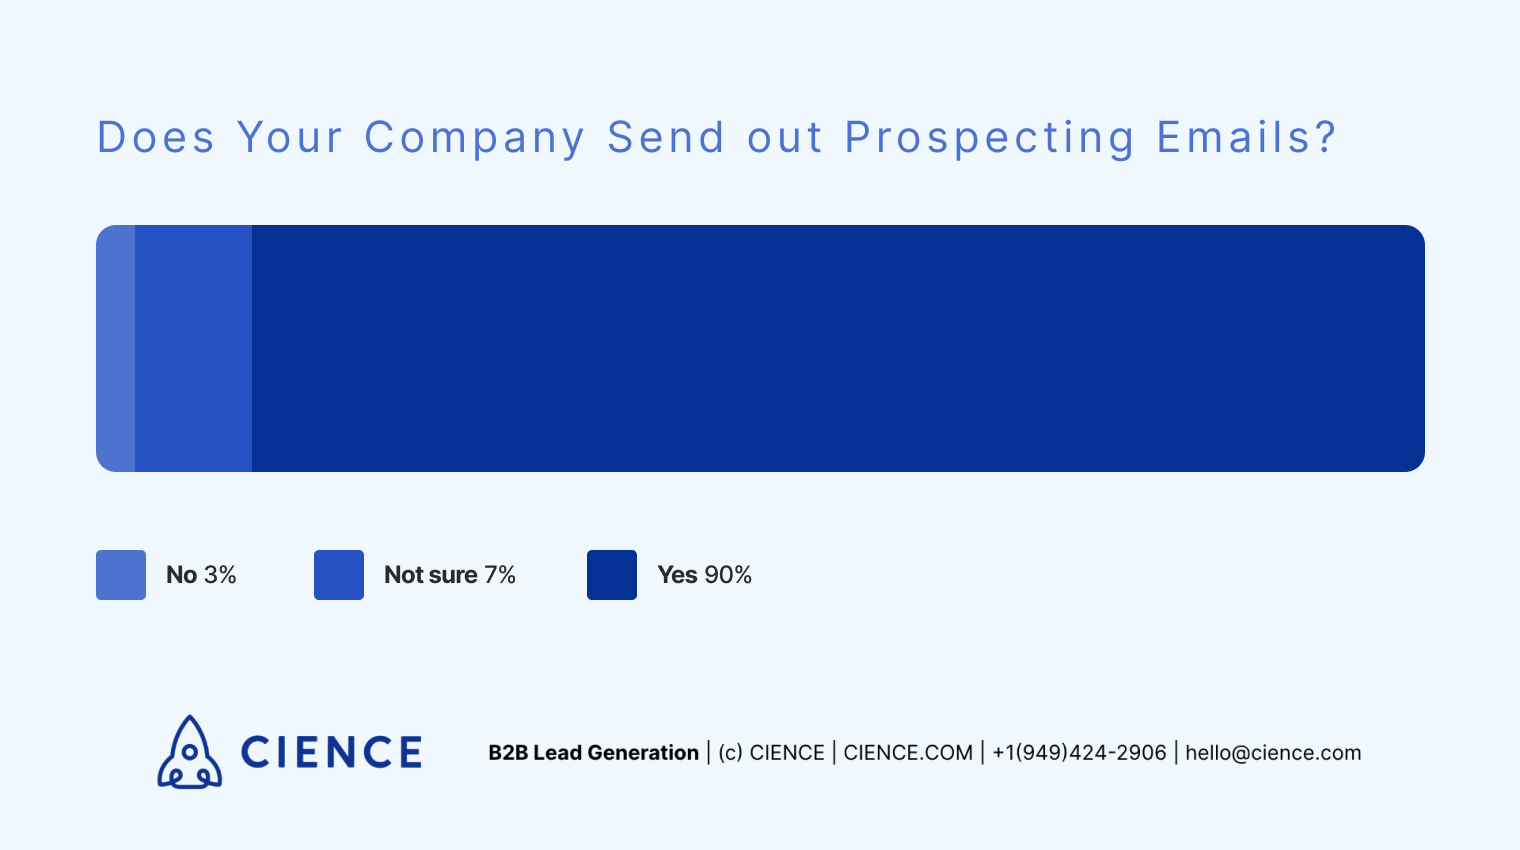 Does Your Company Send out Prospecting Emails? Survey